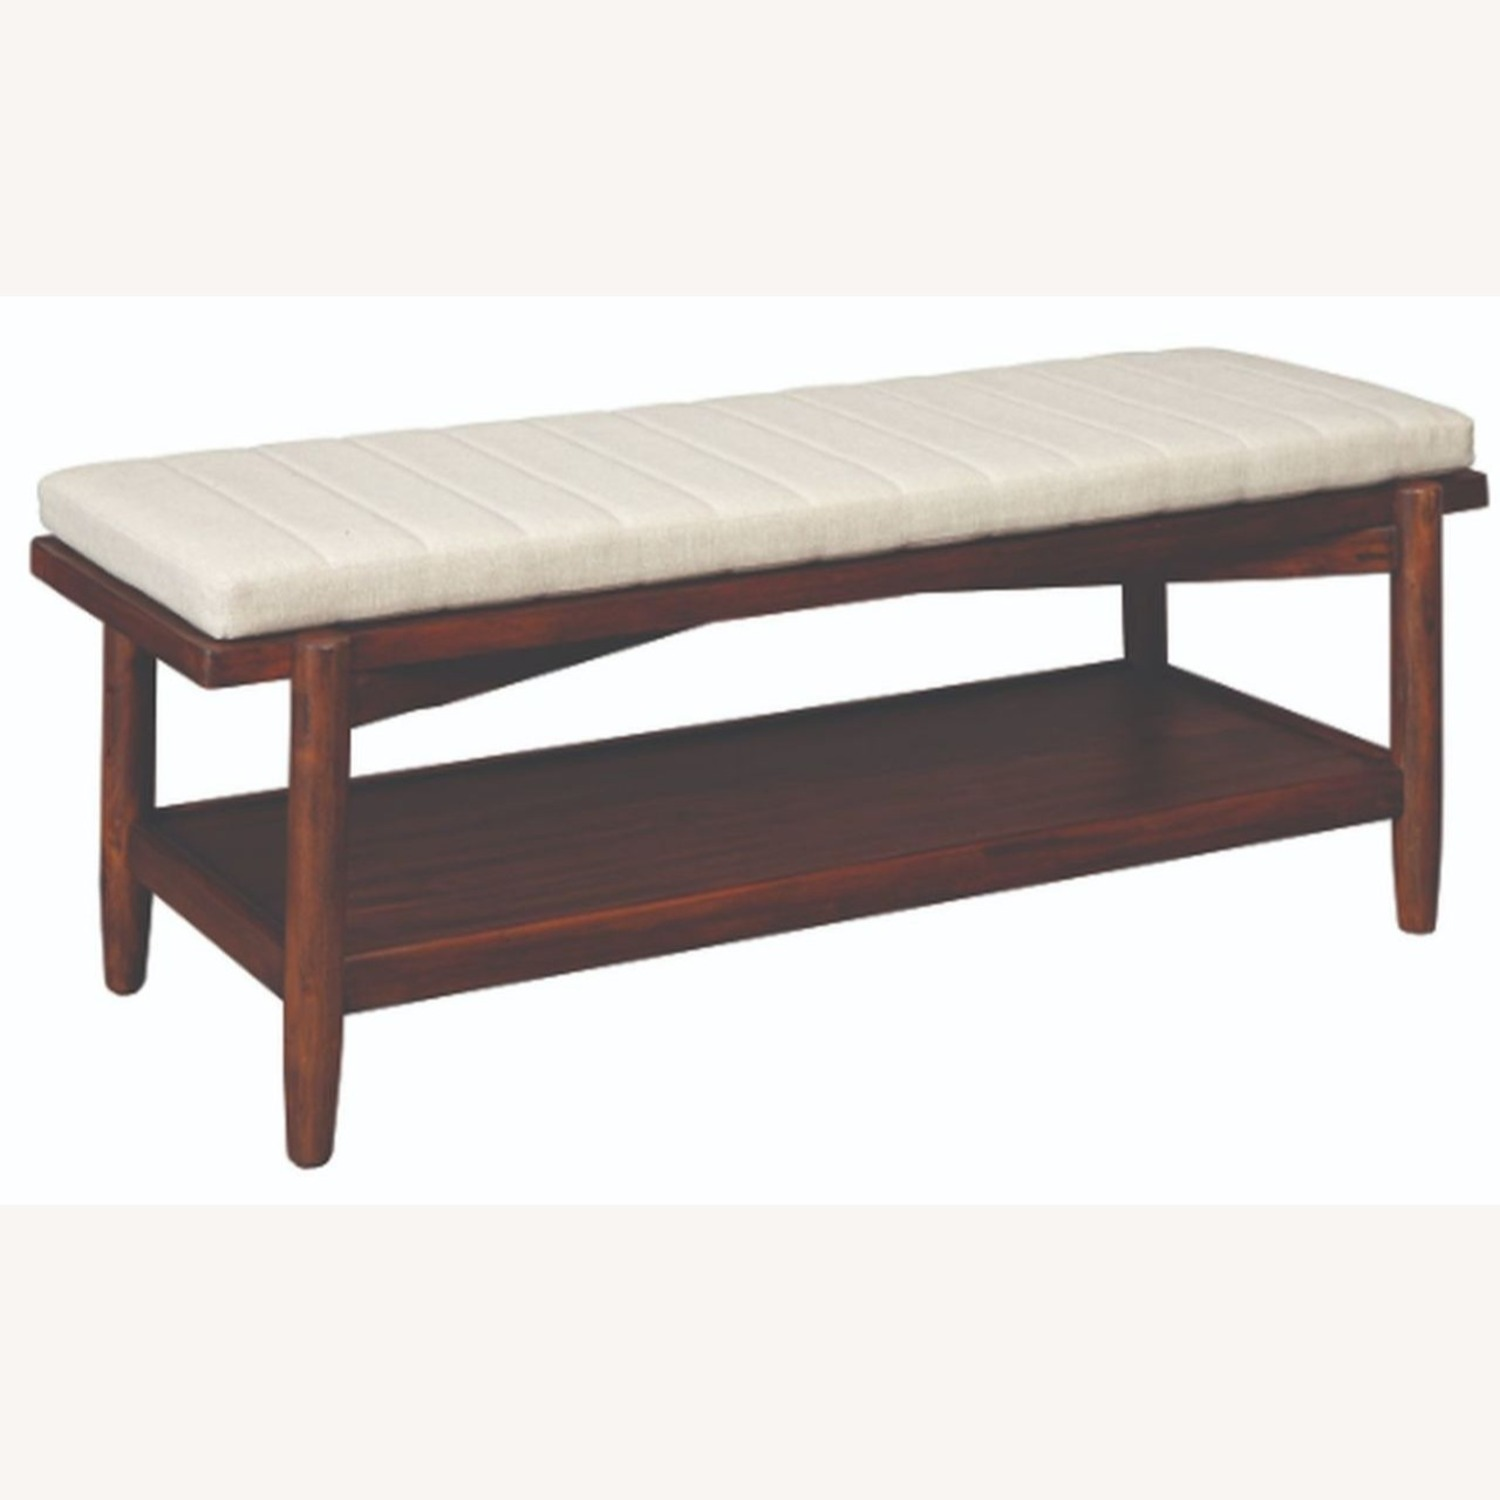 Modern Bench W/ Beige Fabric Seat Cushion - image-0